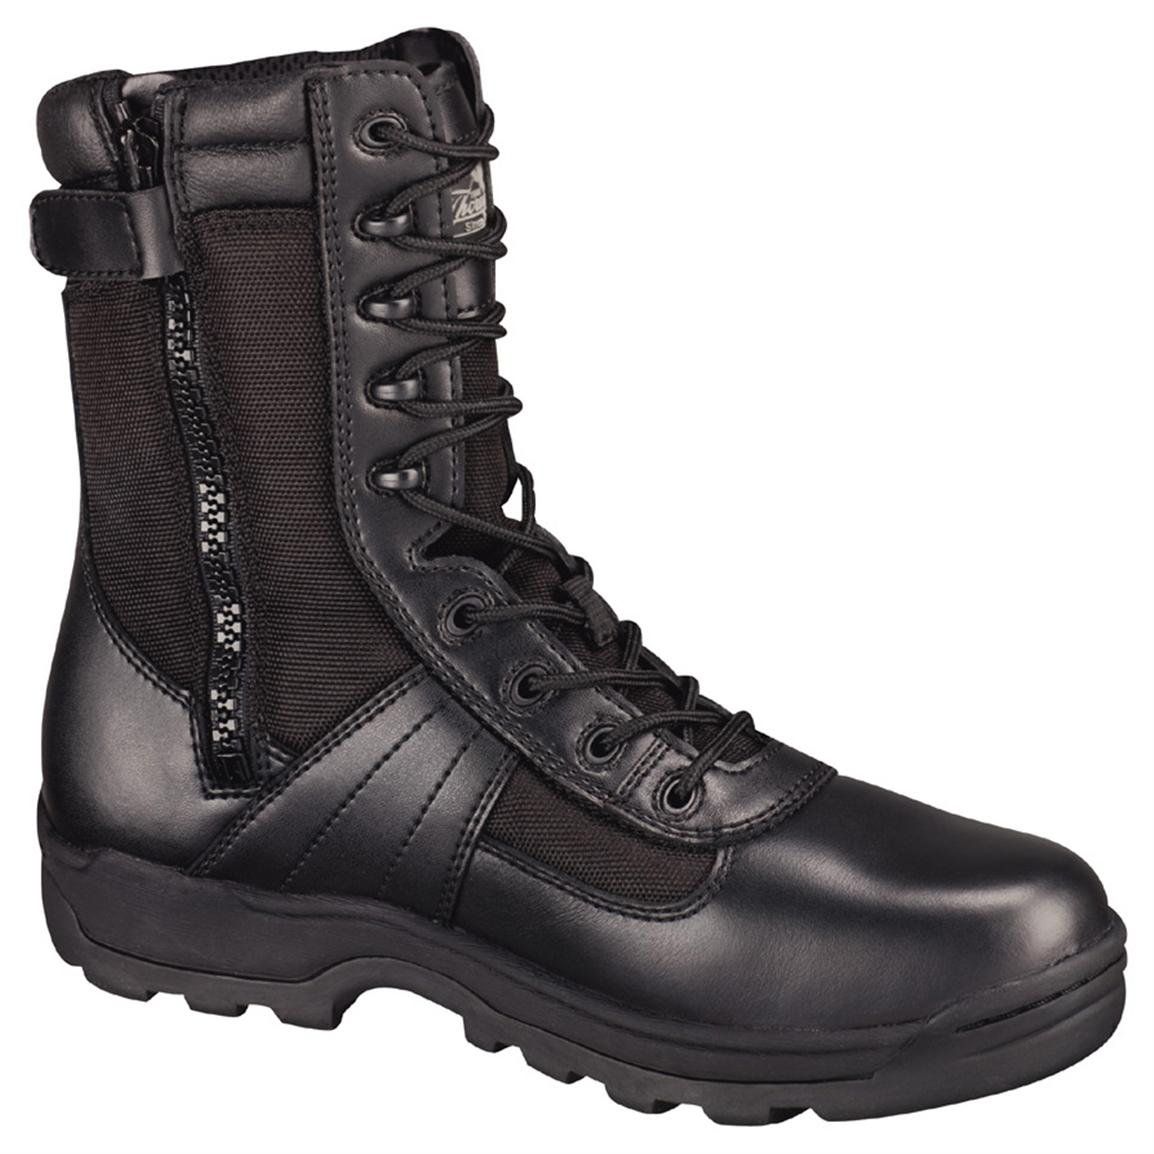 "Men's Thorogood 8"" Waterproof Side-Zip Composite Safety Toe Combat  Boots, Black"